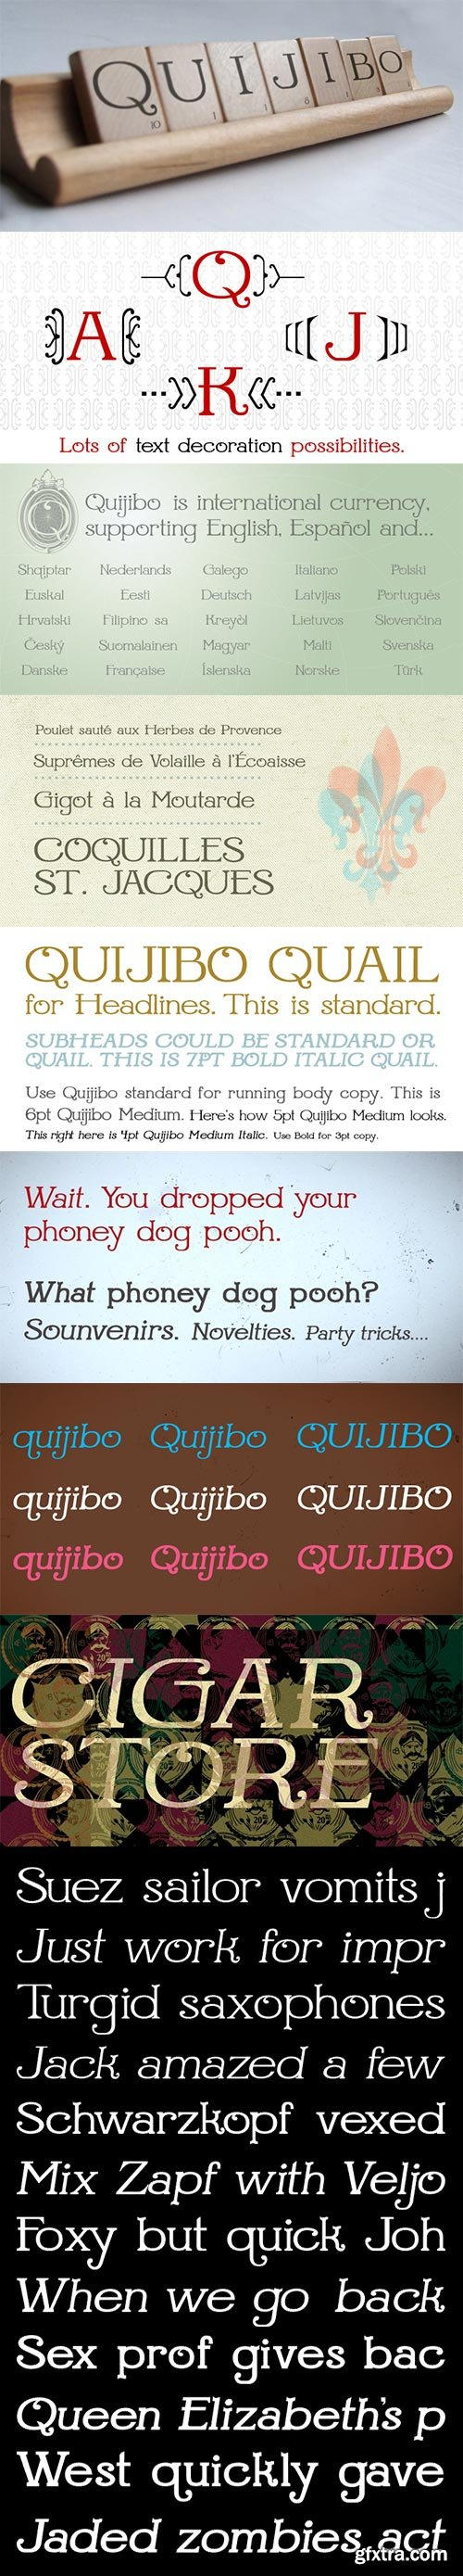 Quijibo Font Family with Webfonts $199